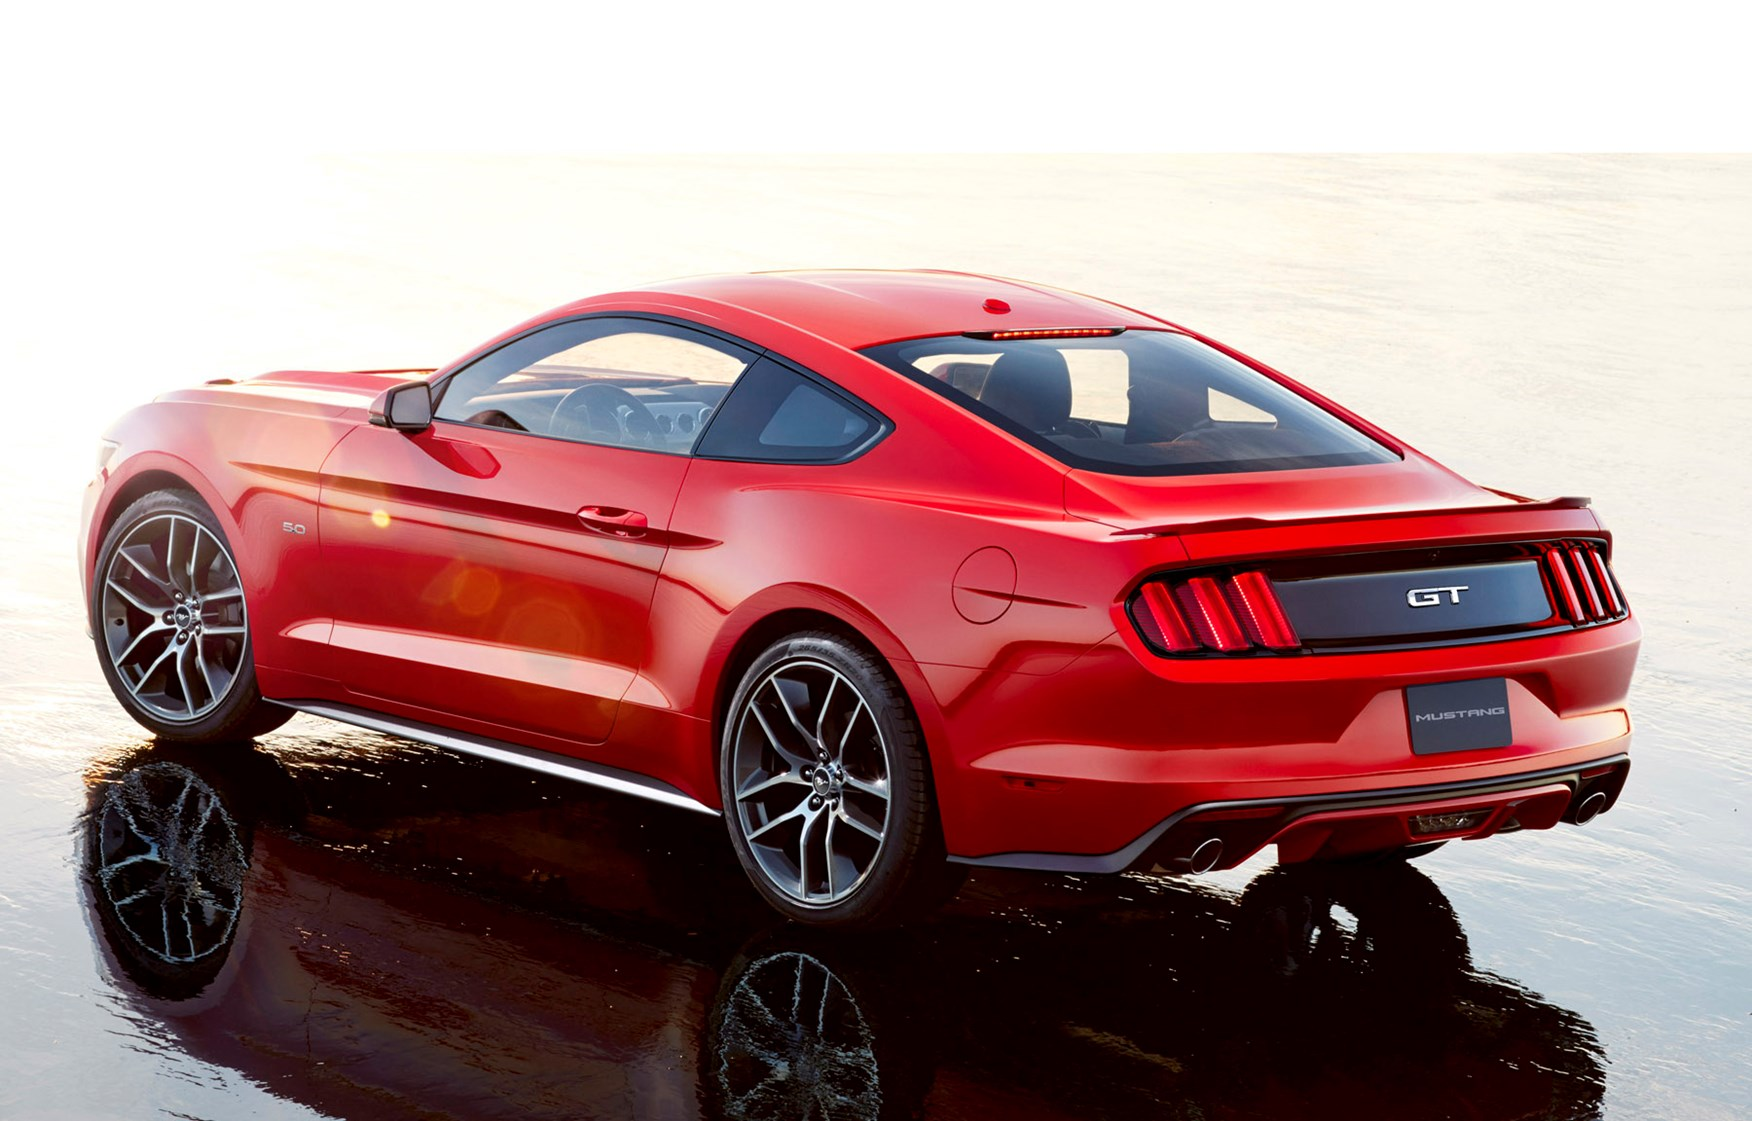 New Ford Mustang 2019 Convertible Coupe Ford Uk >> Ford Mustang Fastback review: summary | Parkers